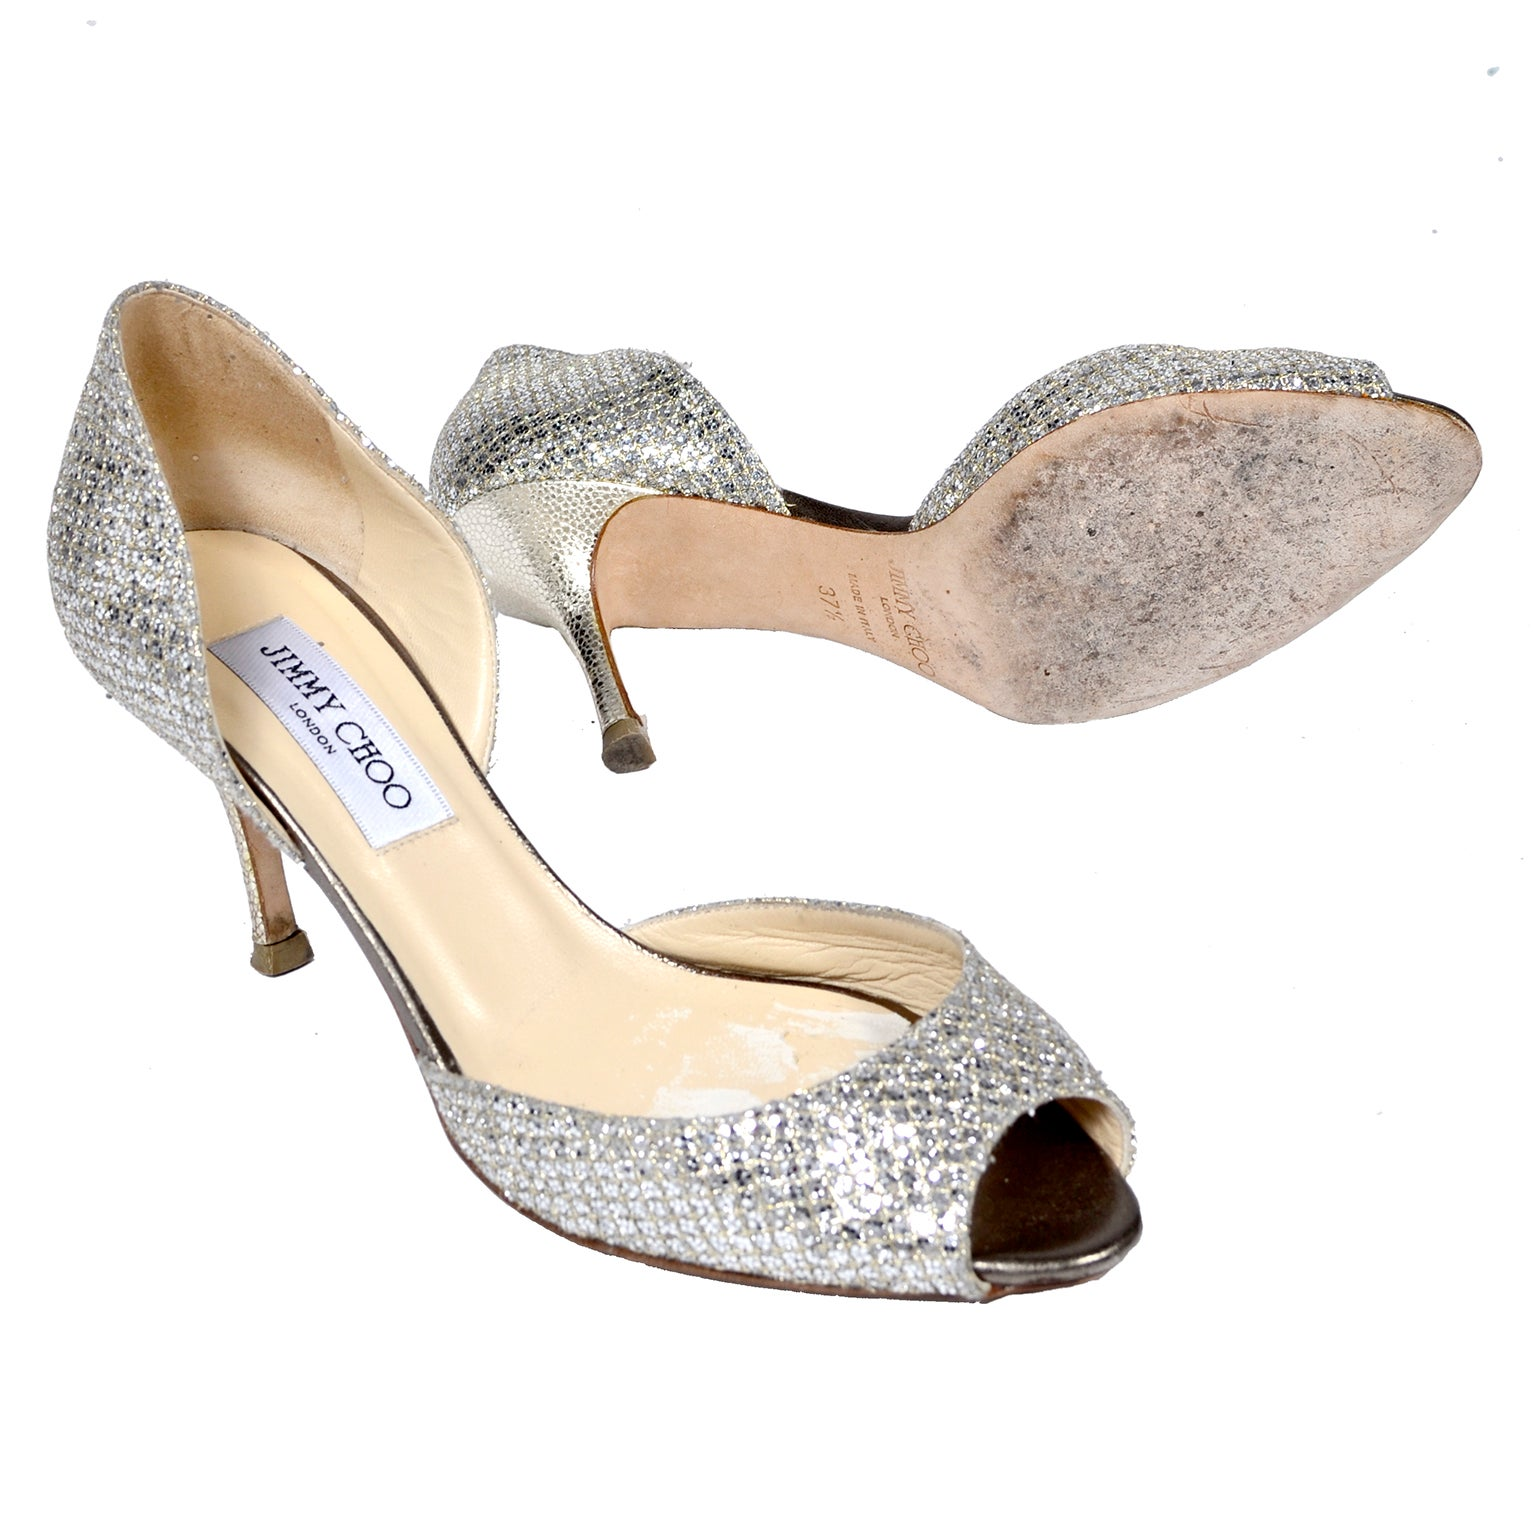 ad49a3d2badf Jimmy Choo Shoes D Orsay Pumps in Glitter Champagne Size 37.5 W  Box and  Bag For Sale at 1stdibs